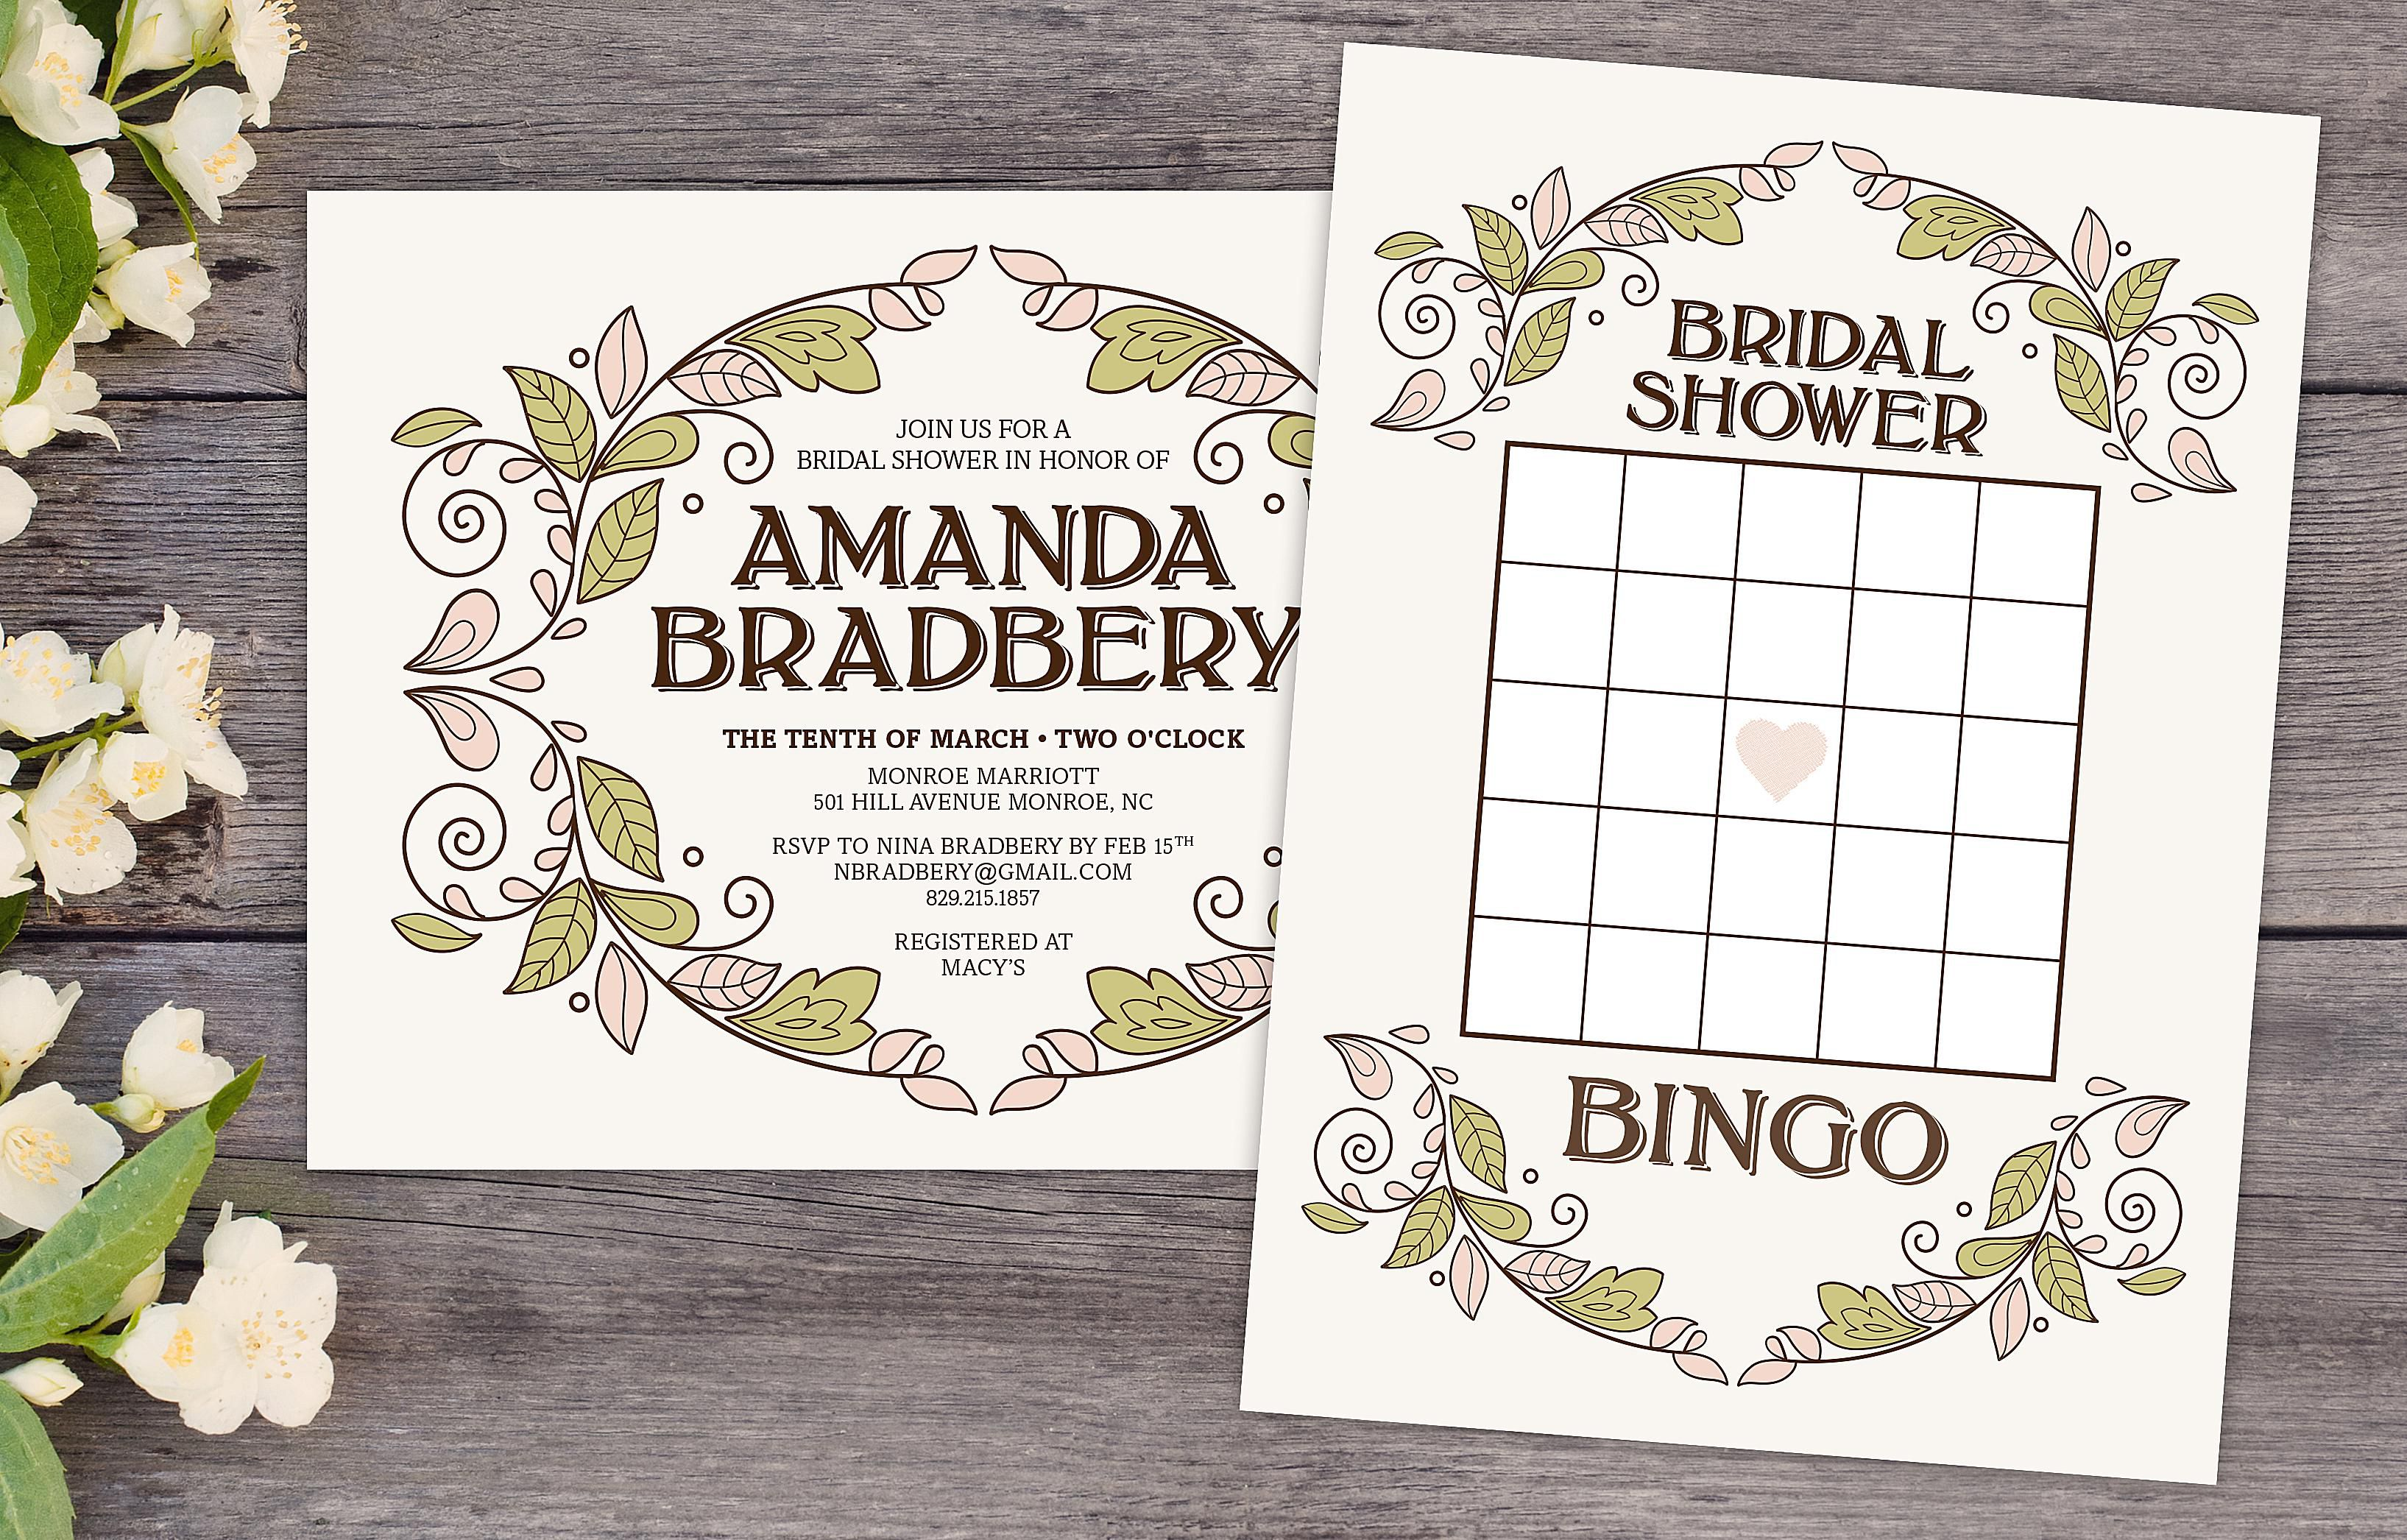 a bridal shower bingo card and bridal shower invitation on a wooden table surrounded by flowers